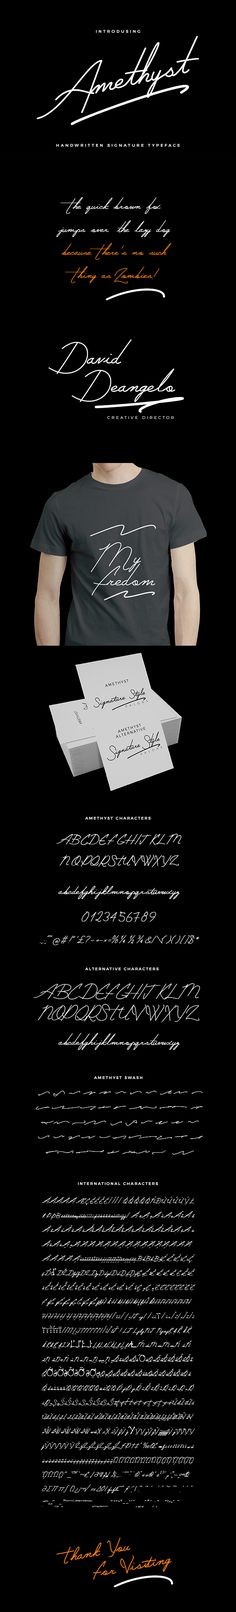 Introducing Amethyst Handwritten Signature Typeface –based on an original idea by me. a font that is very fresh and unique style handmade. Amethyst Handwritten Signature Typeface is perfectly suited to logo, stationery, poster, apparel, branding, wedding invitation, card, tagline, layout design, and much more !!